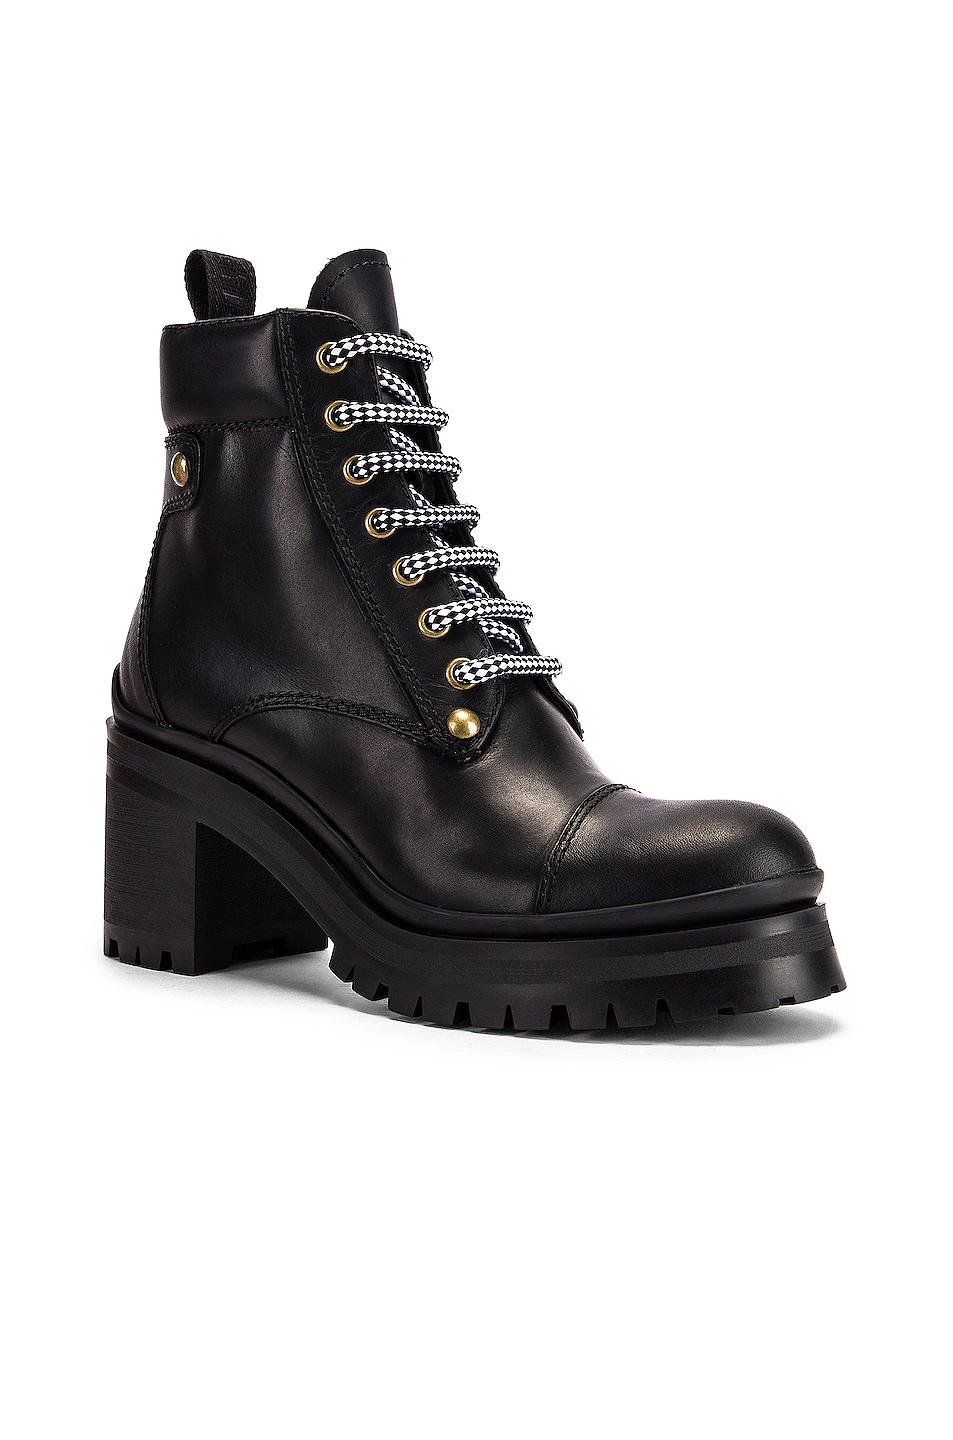 Image 2 of Miu Miu Lace Up Leather Ankle Boots in Black